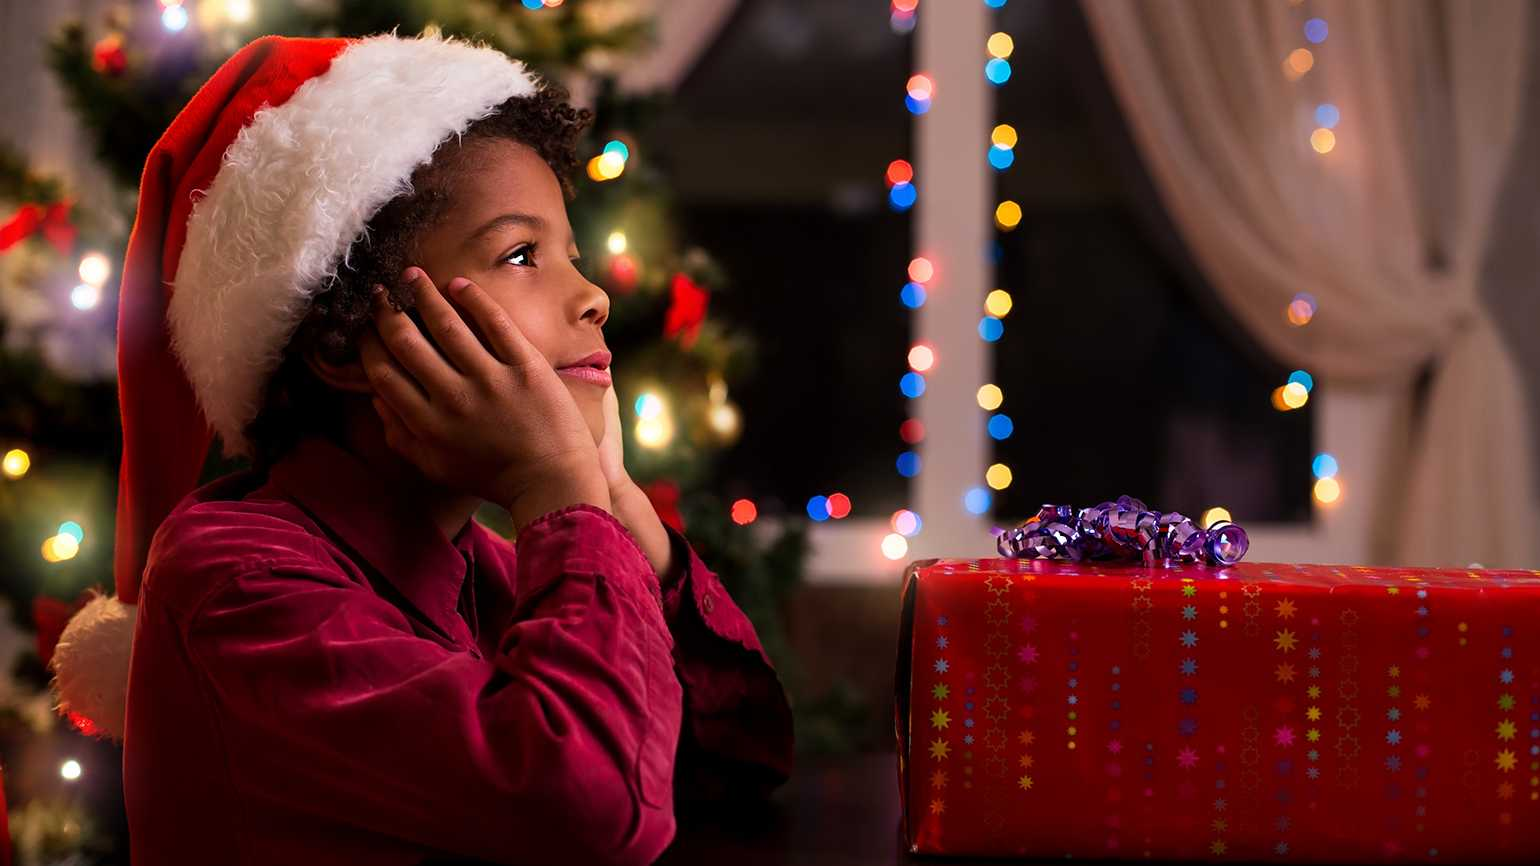 A child in a Santa hat exhibits the wonder of the holidays